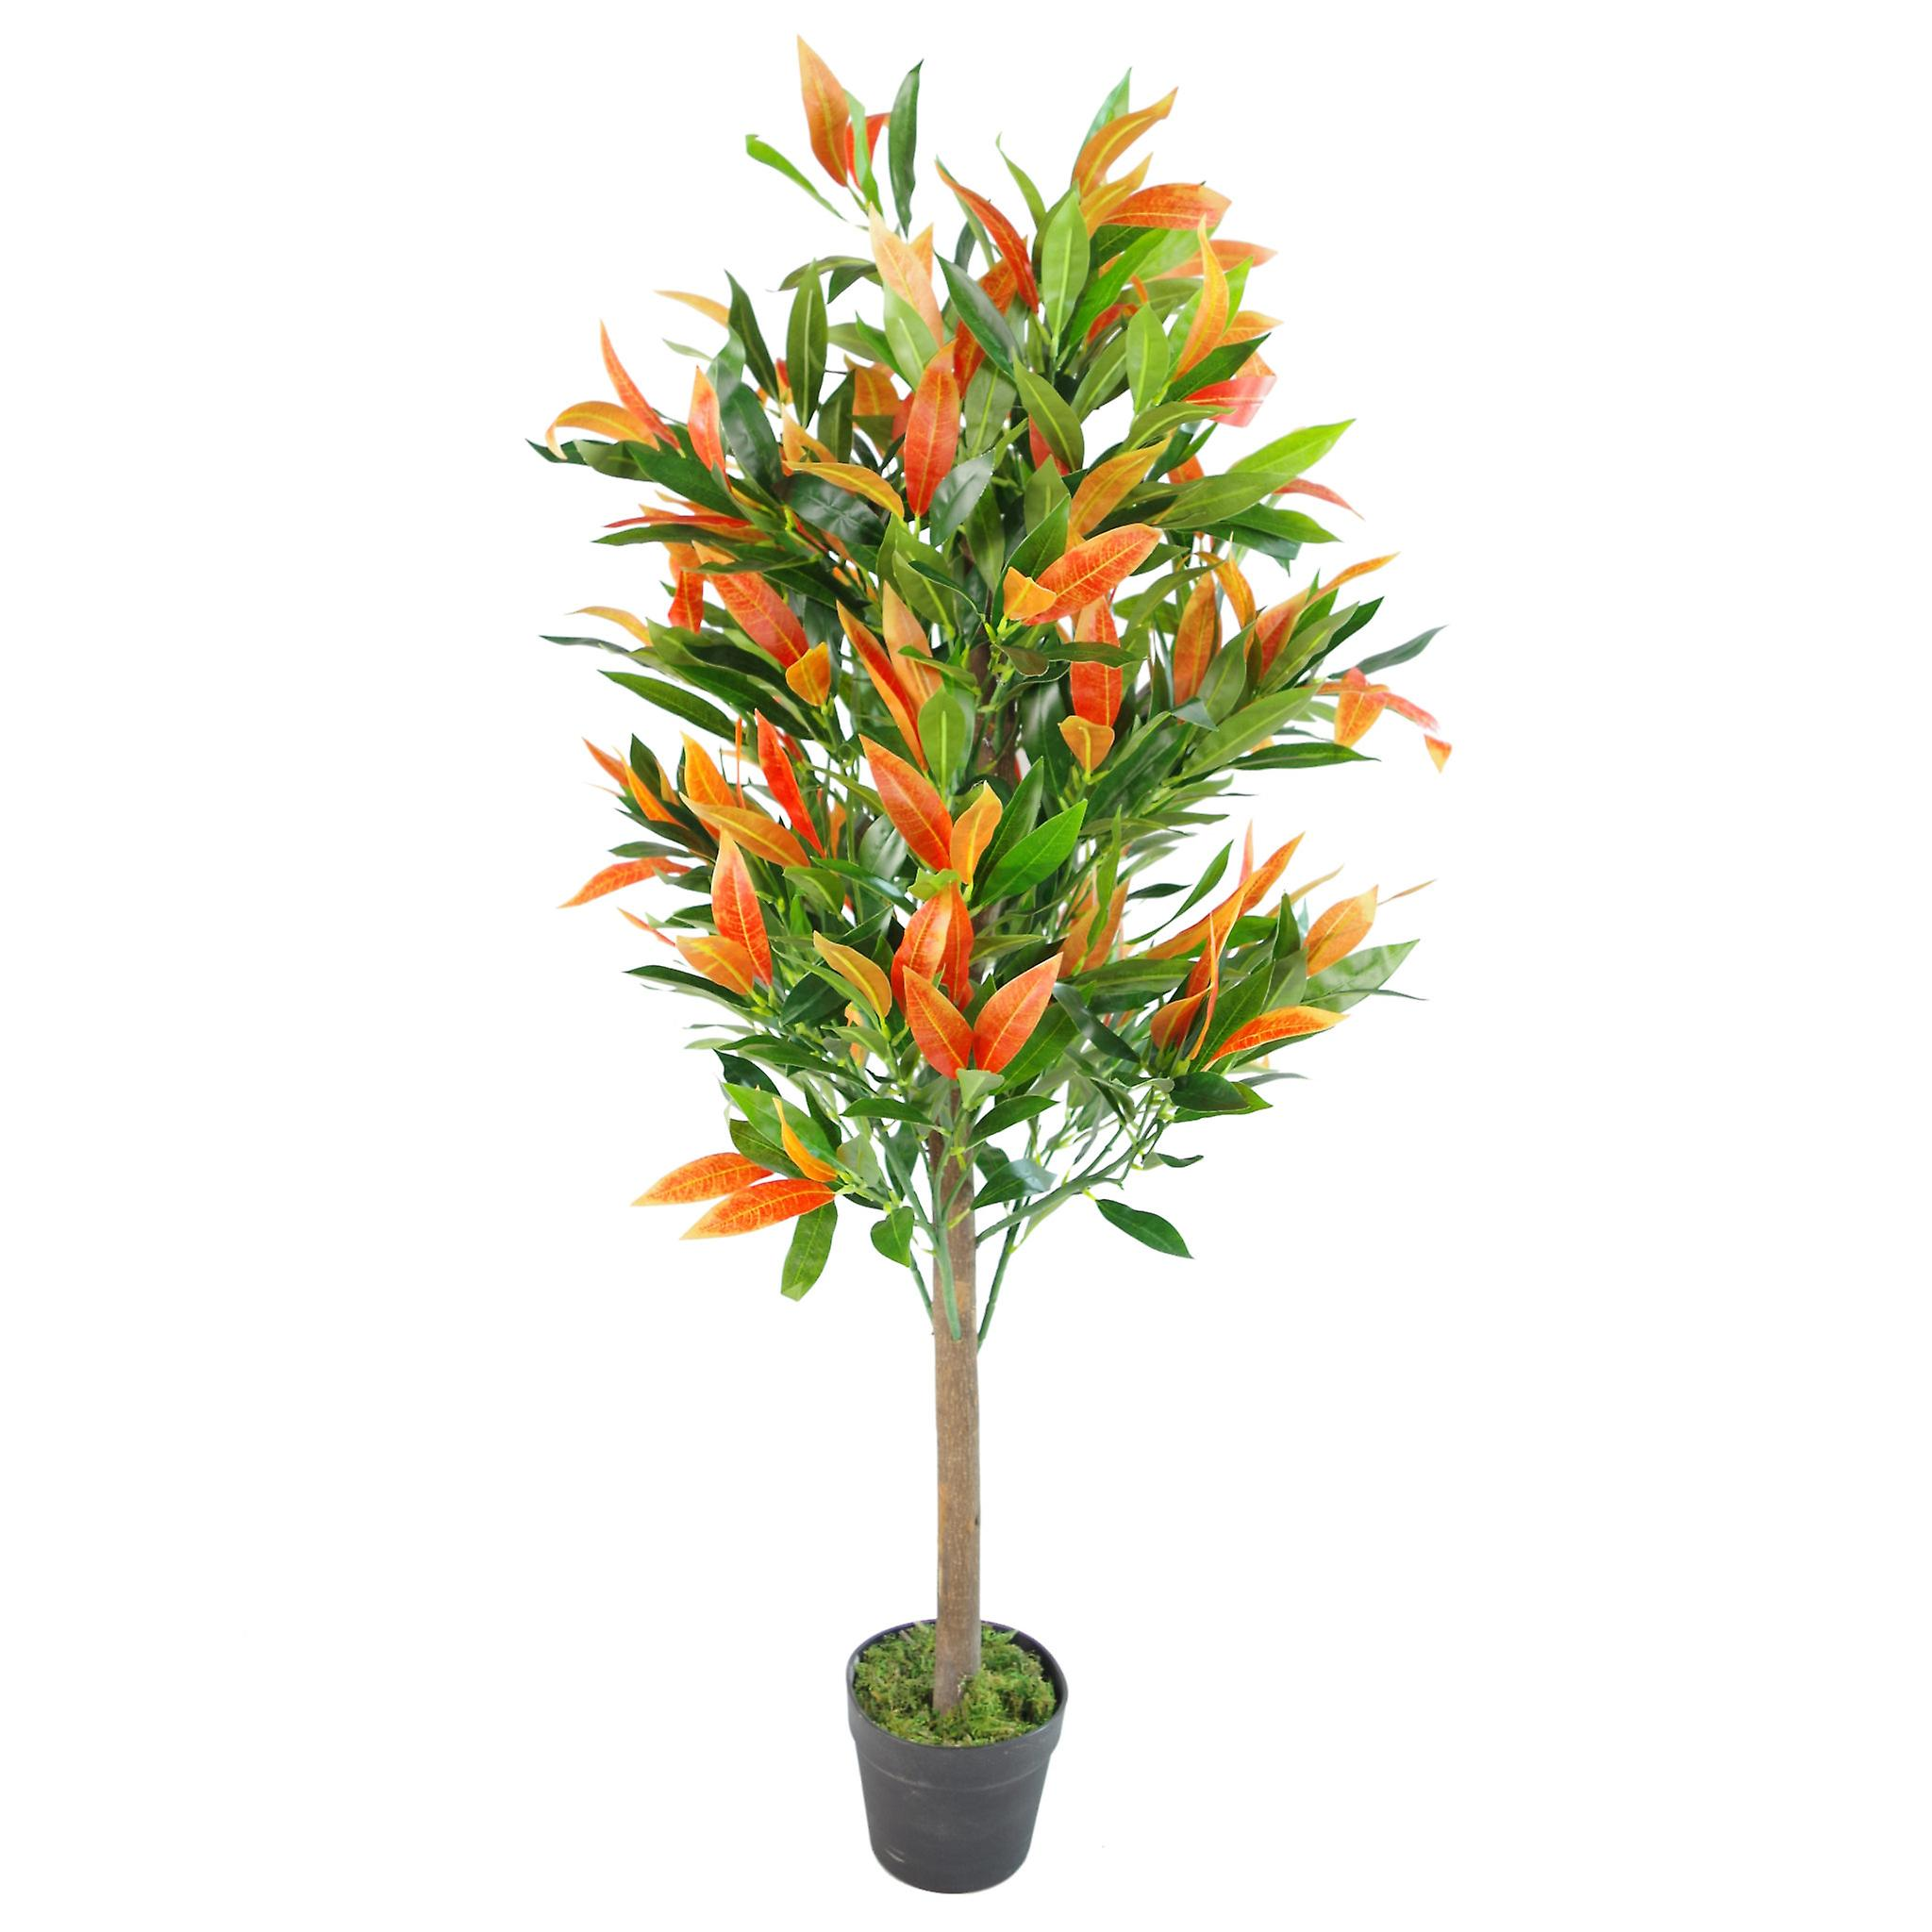 130cm Artificial Red & Green Ficus Tree